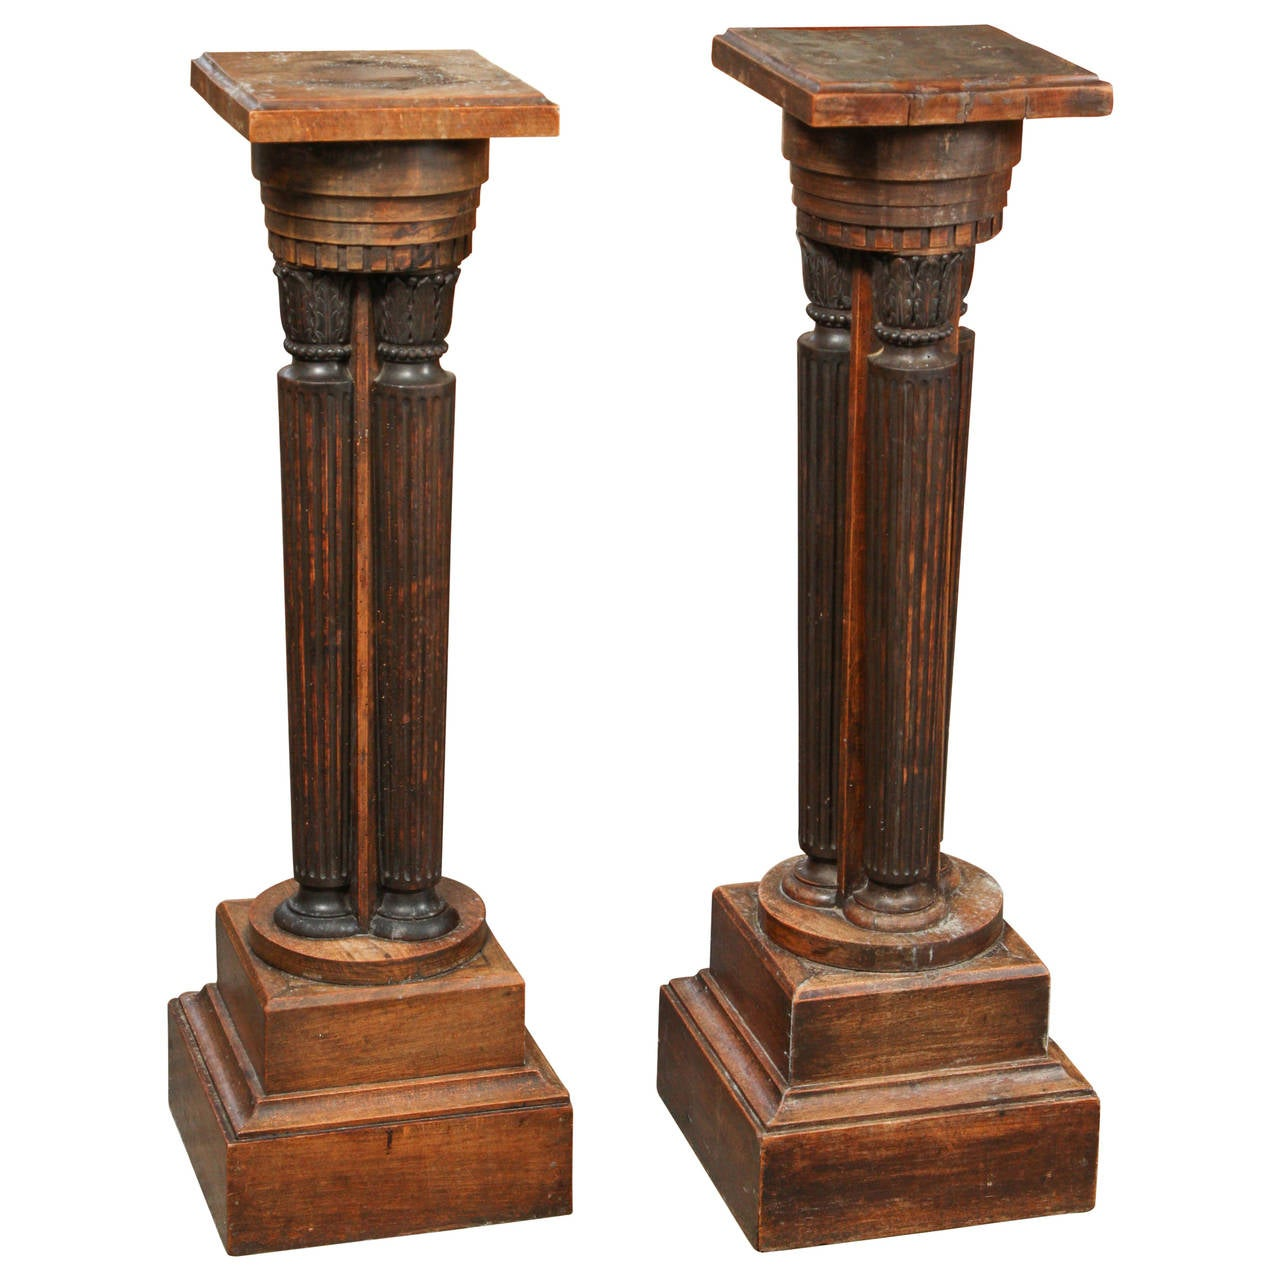 Late 19th Century French Pair of Classical Pedestal Stand Plinths